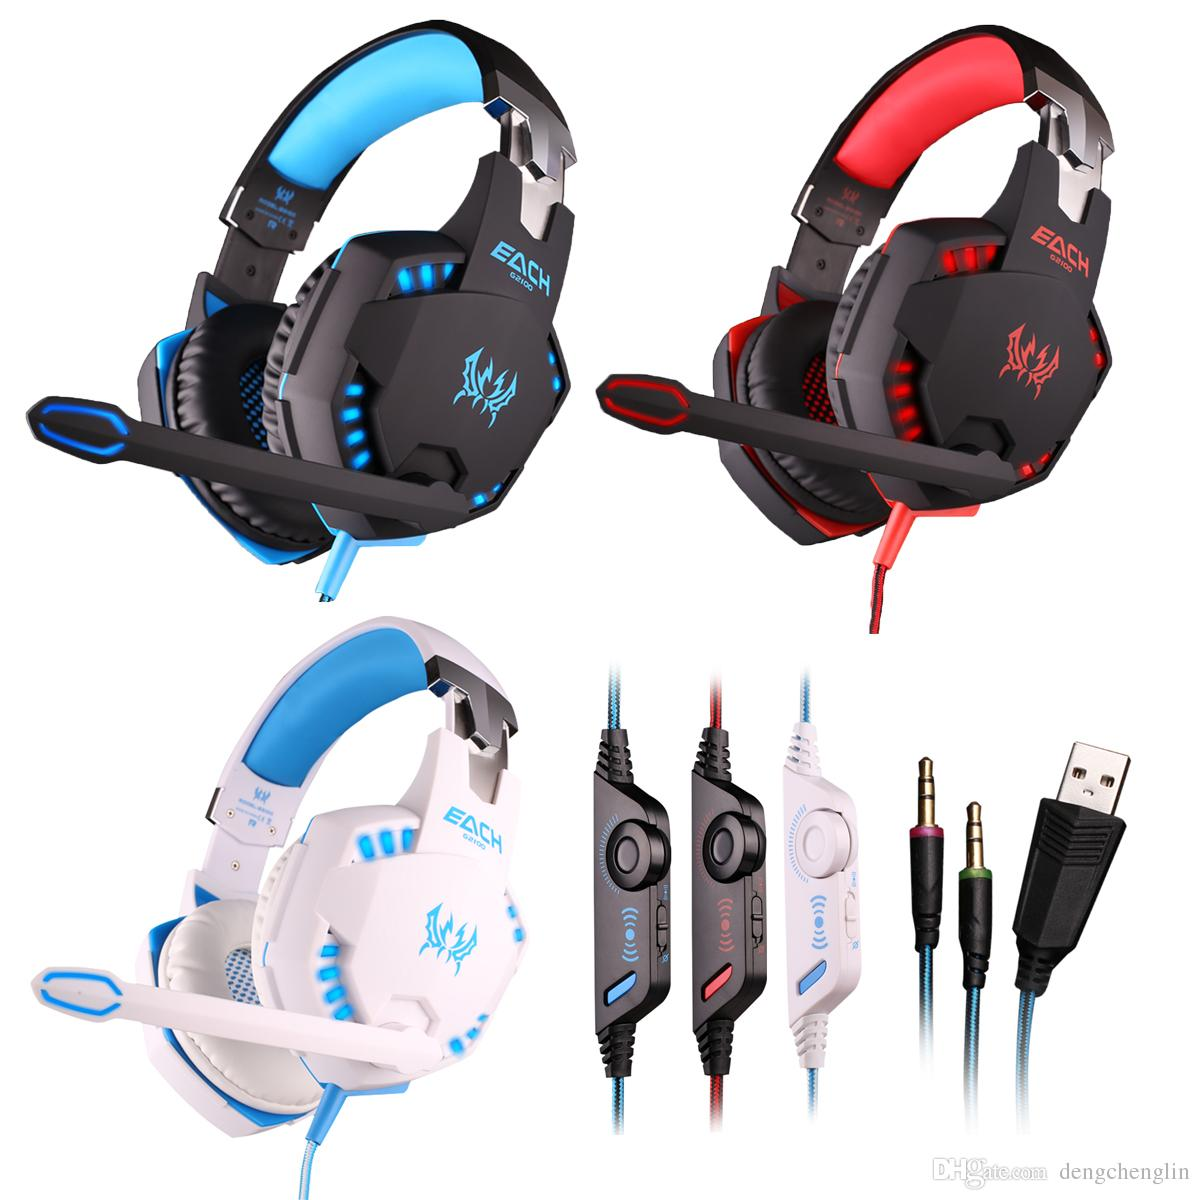 G2100 3.5MM Gaming Headphone Vibration Function Headset with Mic Stereo Bass Earphone LED Light for PC Laptop High quality